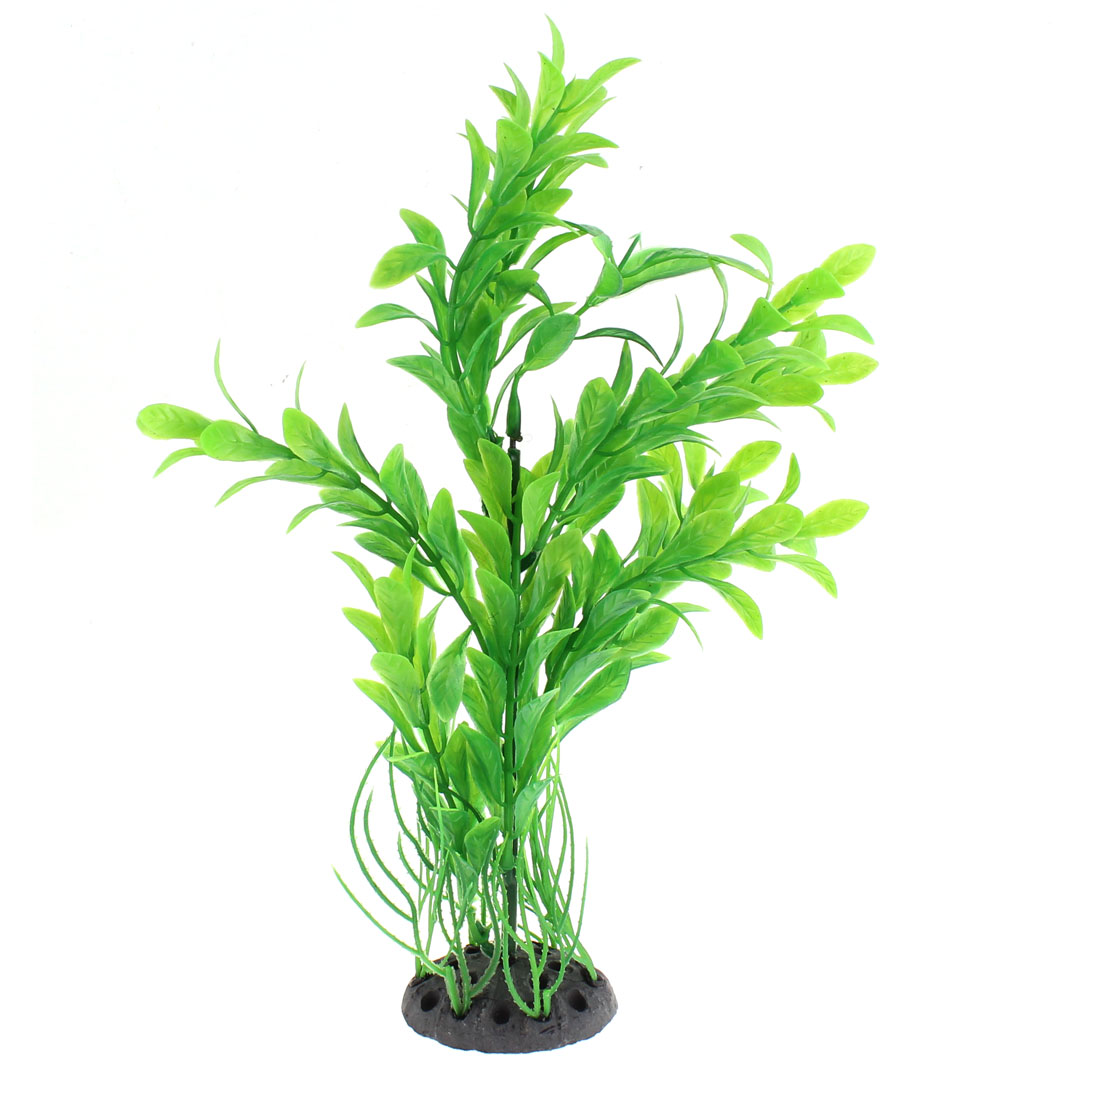 "Aquarium Ceramic Base Plastic Plant Ornament 10"" Height"